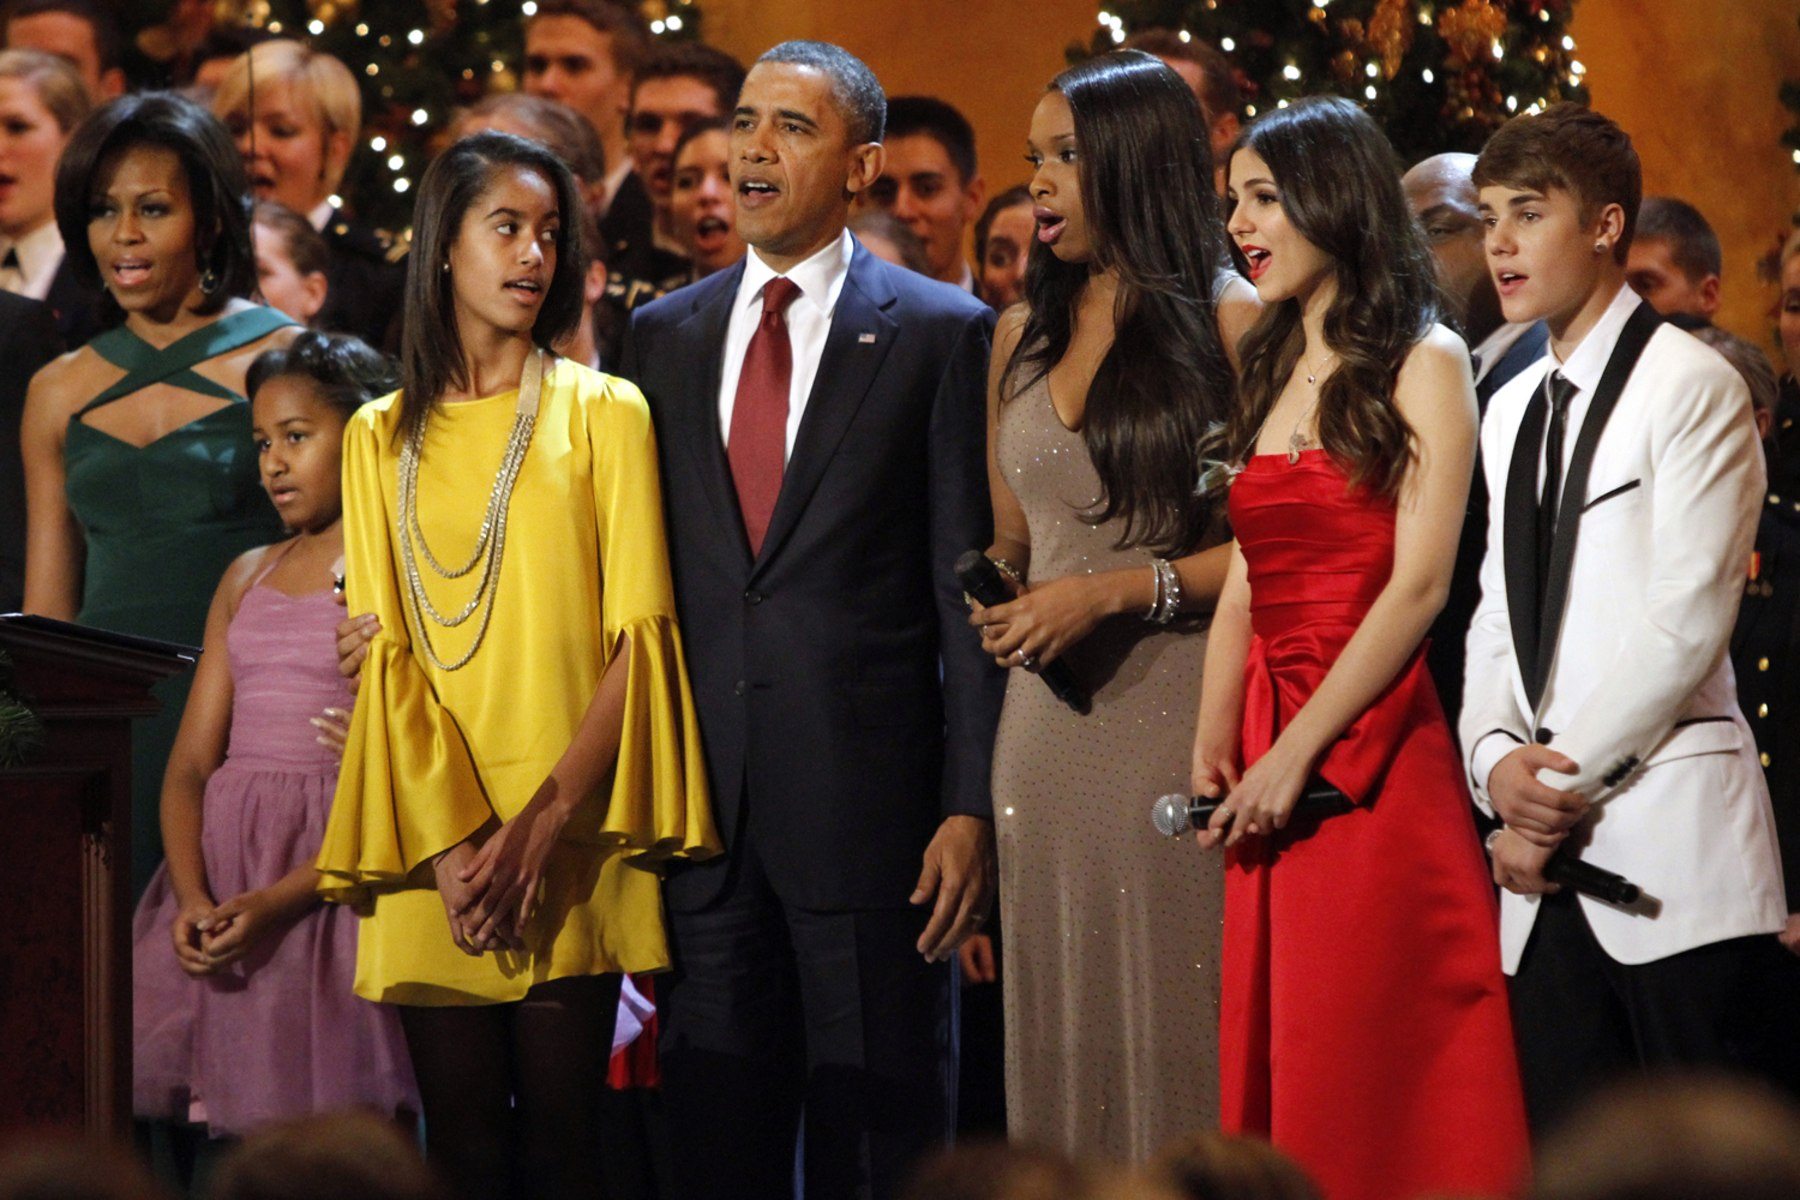 Malia Obama attends her first prom, president reveals - TODAY.com